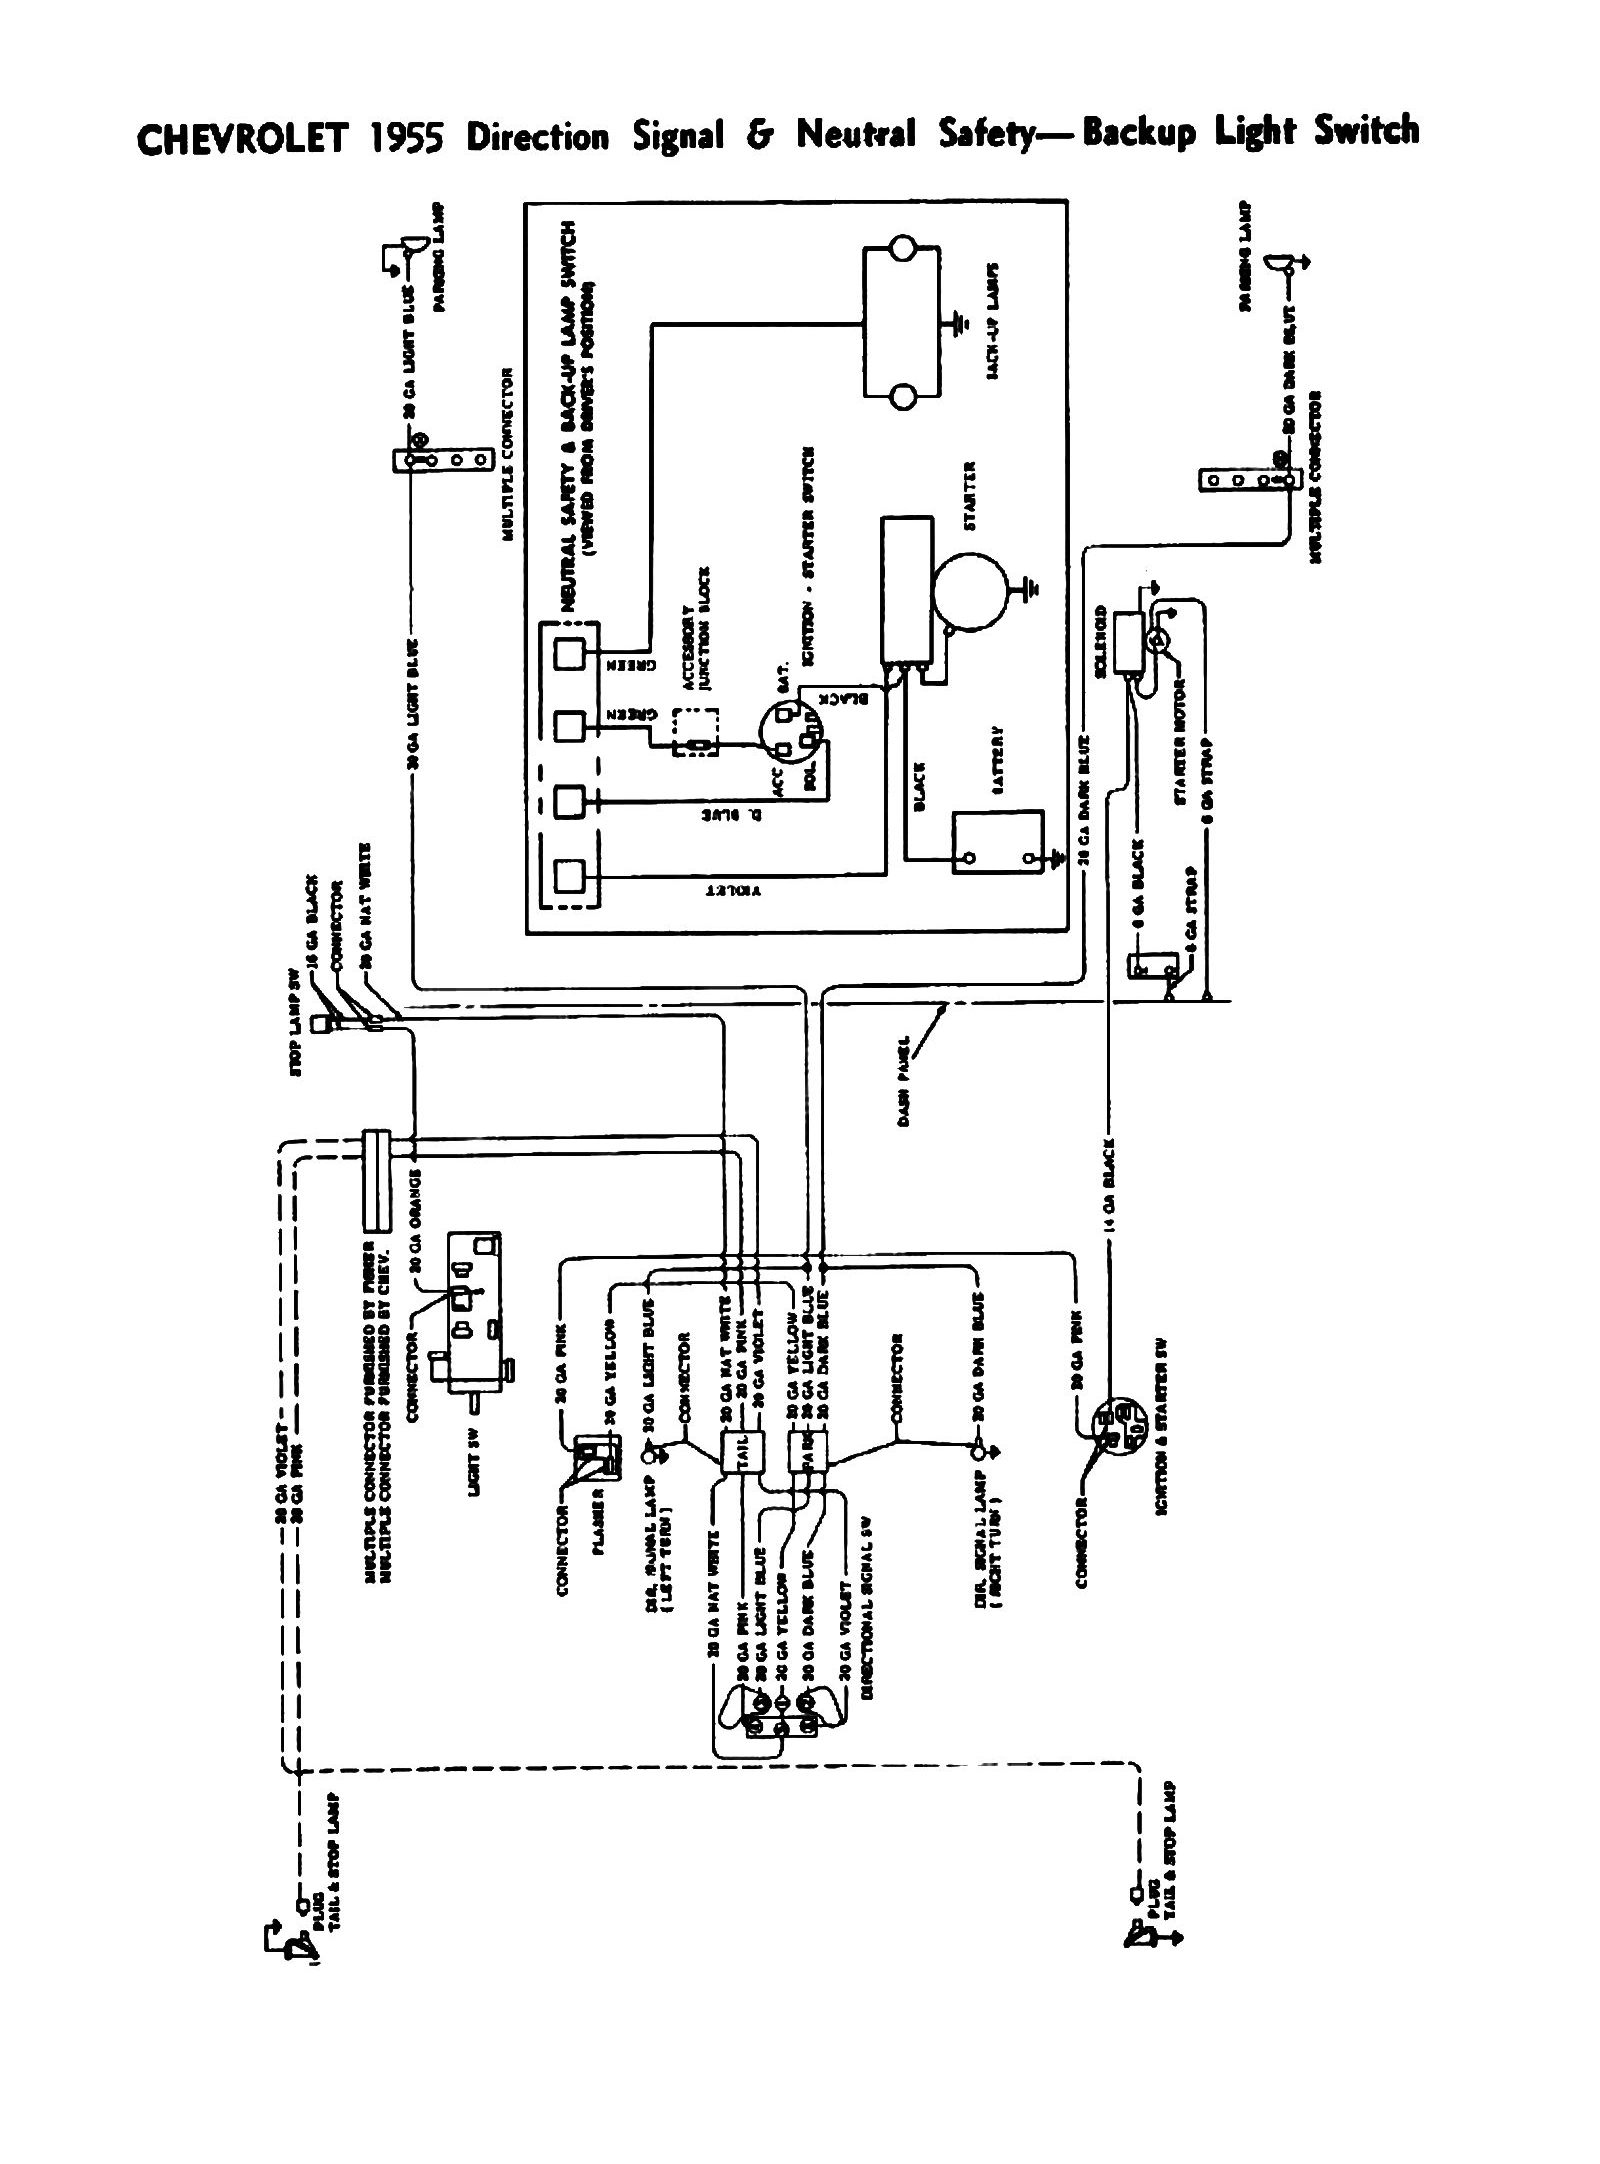 55signal wiring diagram for 1955 chevy bel air readingrat net 1957 chevy bel air wiring harness at mifinder.co